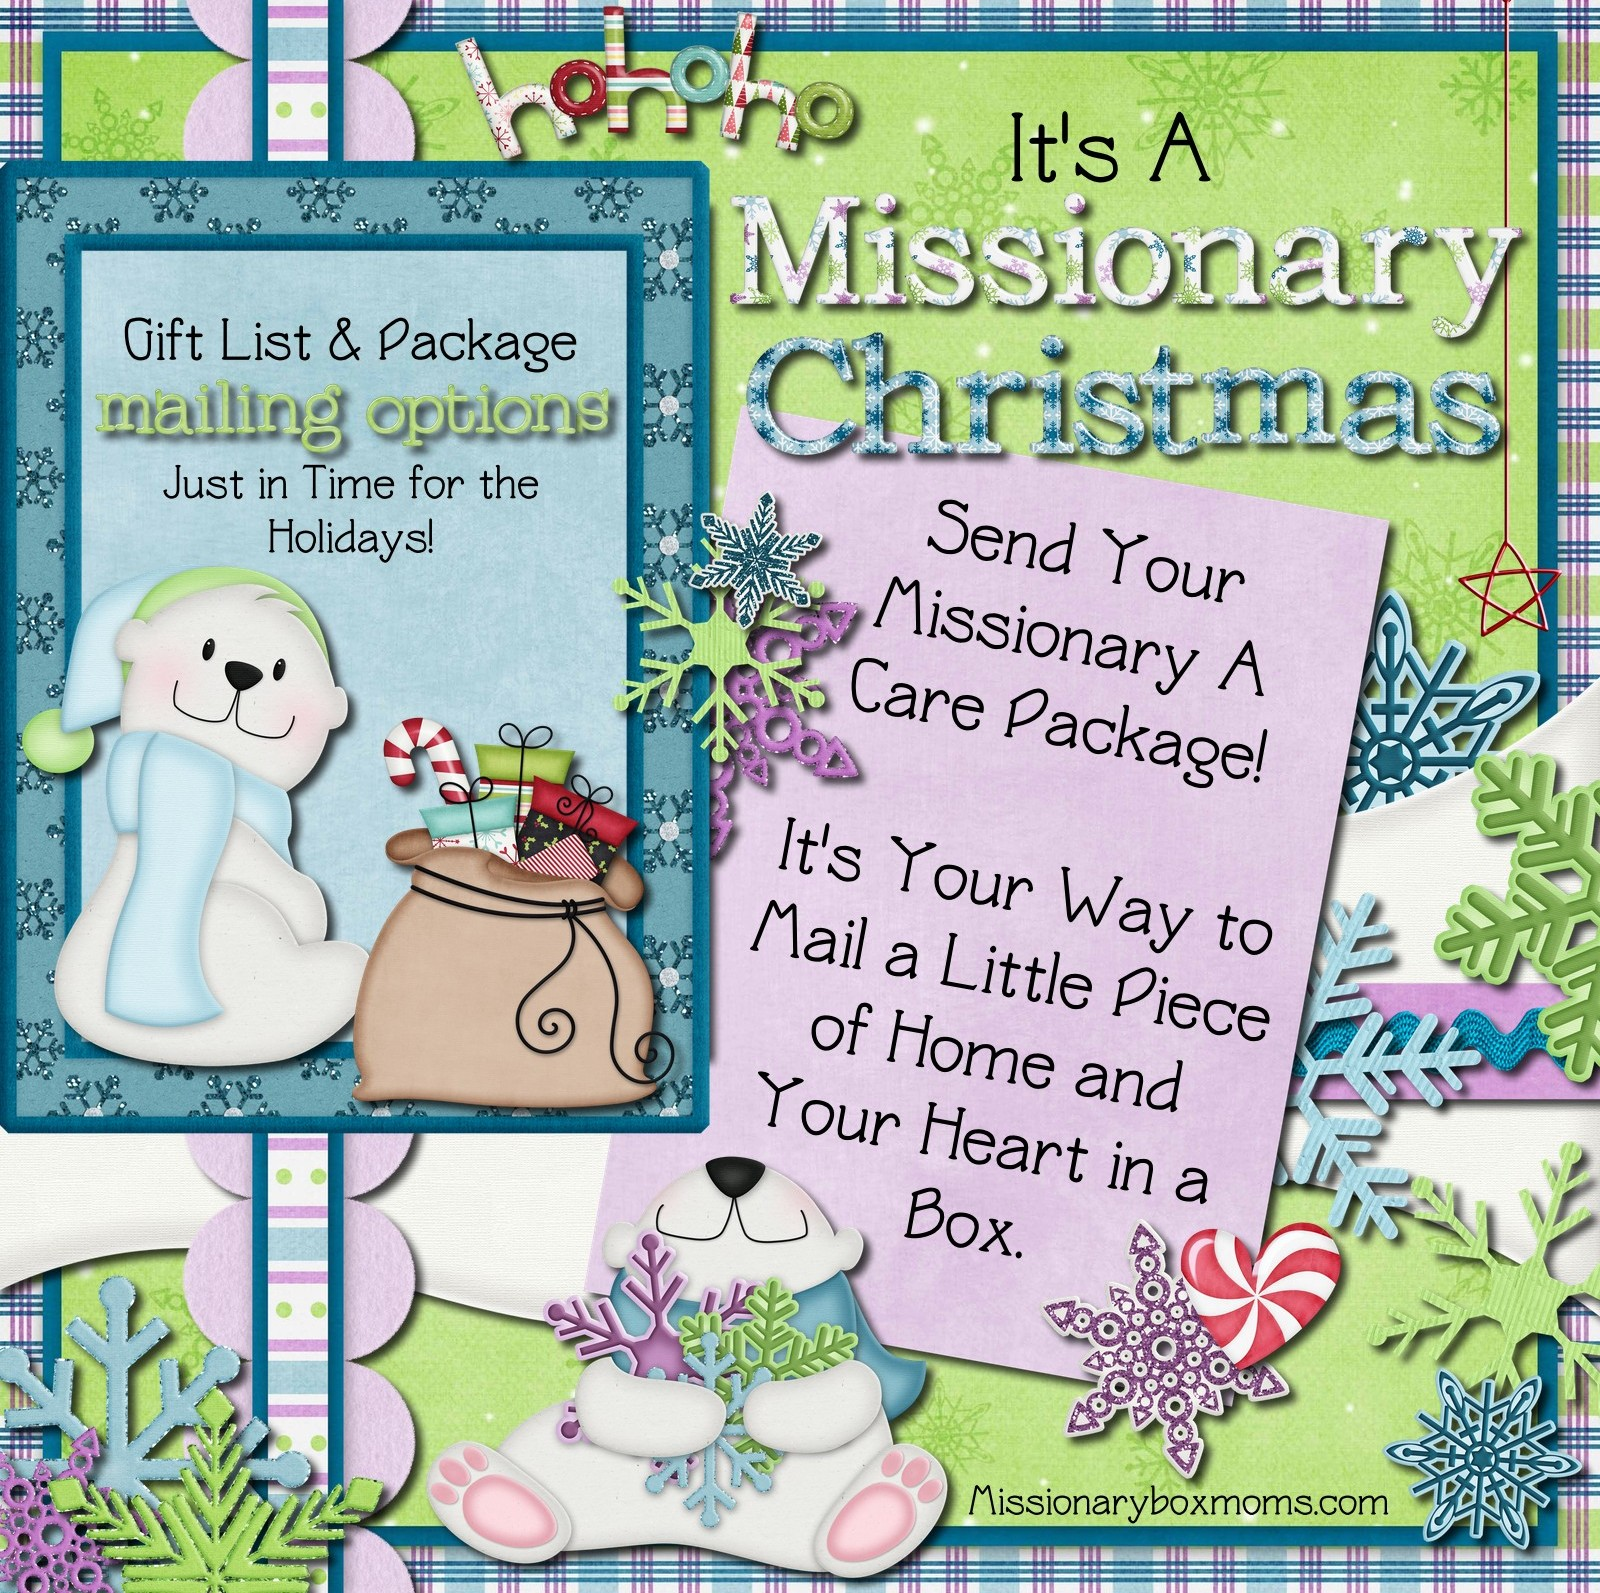 LDS Missionary Care Package Kits & Ideas | Missionary Box Moms ...